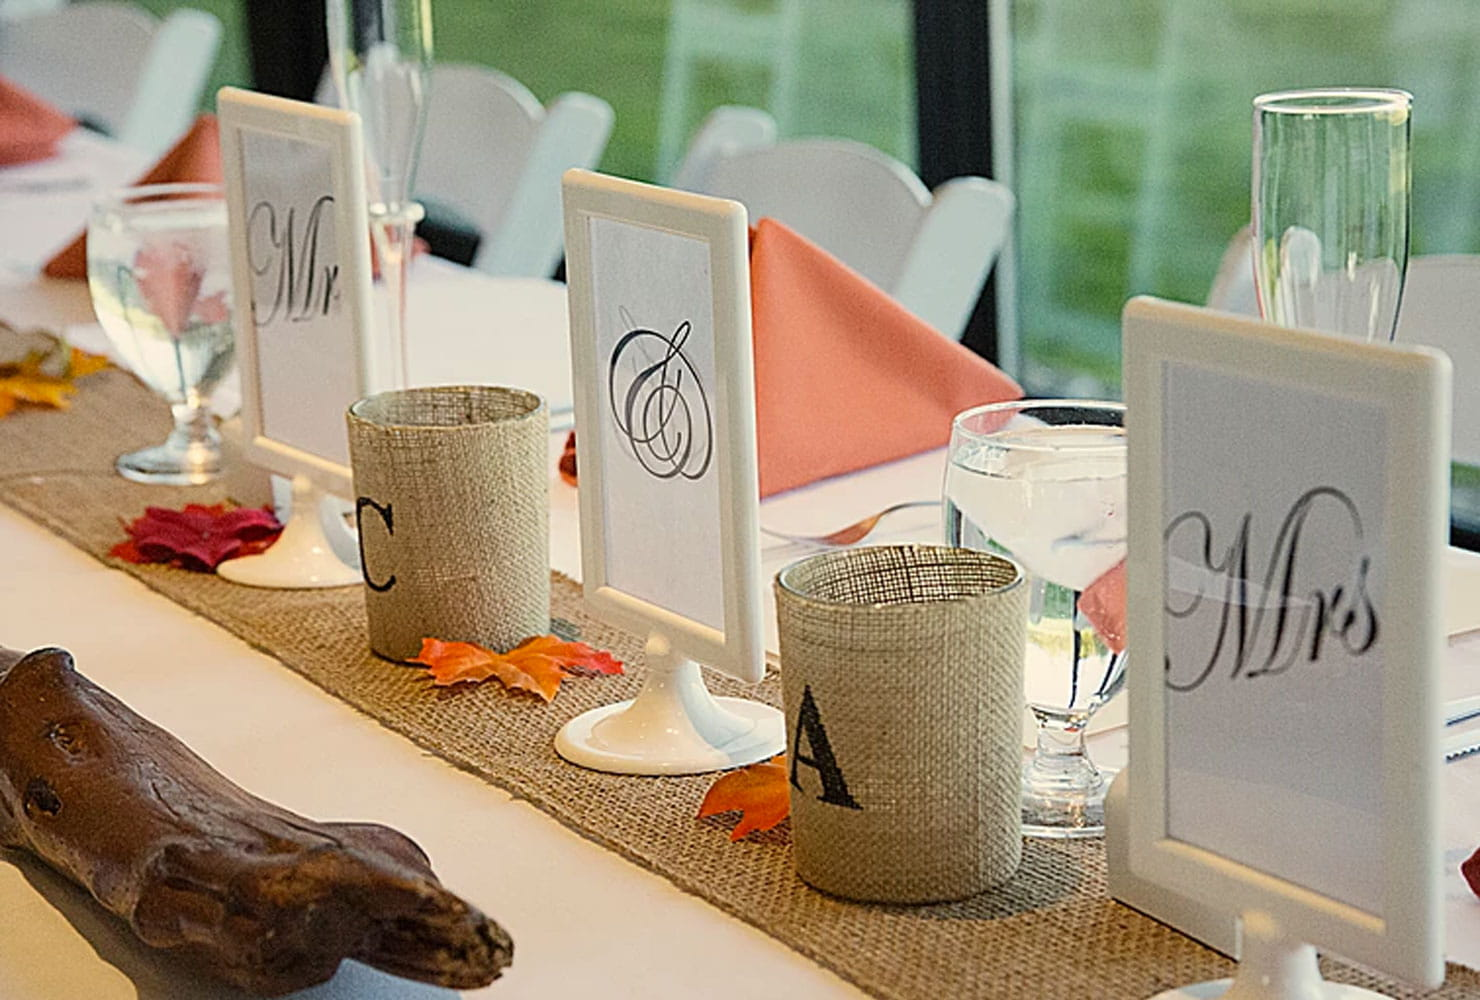 sweetheart table ideas for every season shutterfly autumn tones accent your focus runner with fall leaves and driftwood burlap accents oval wood coffee outdoor storage cabinet